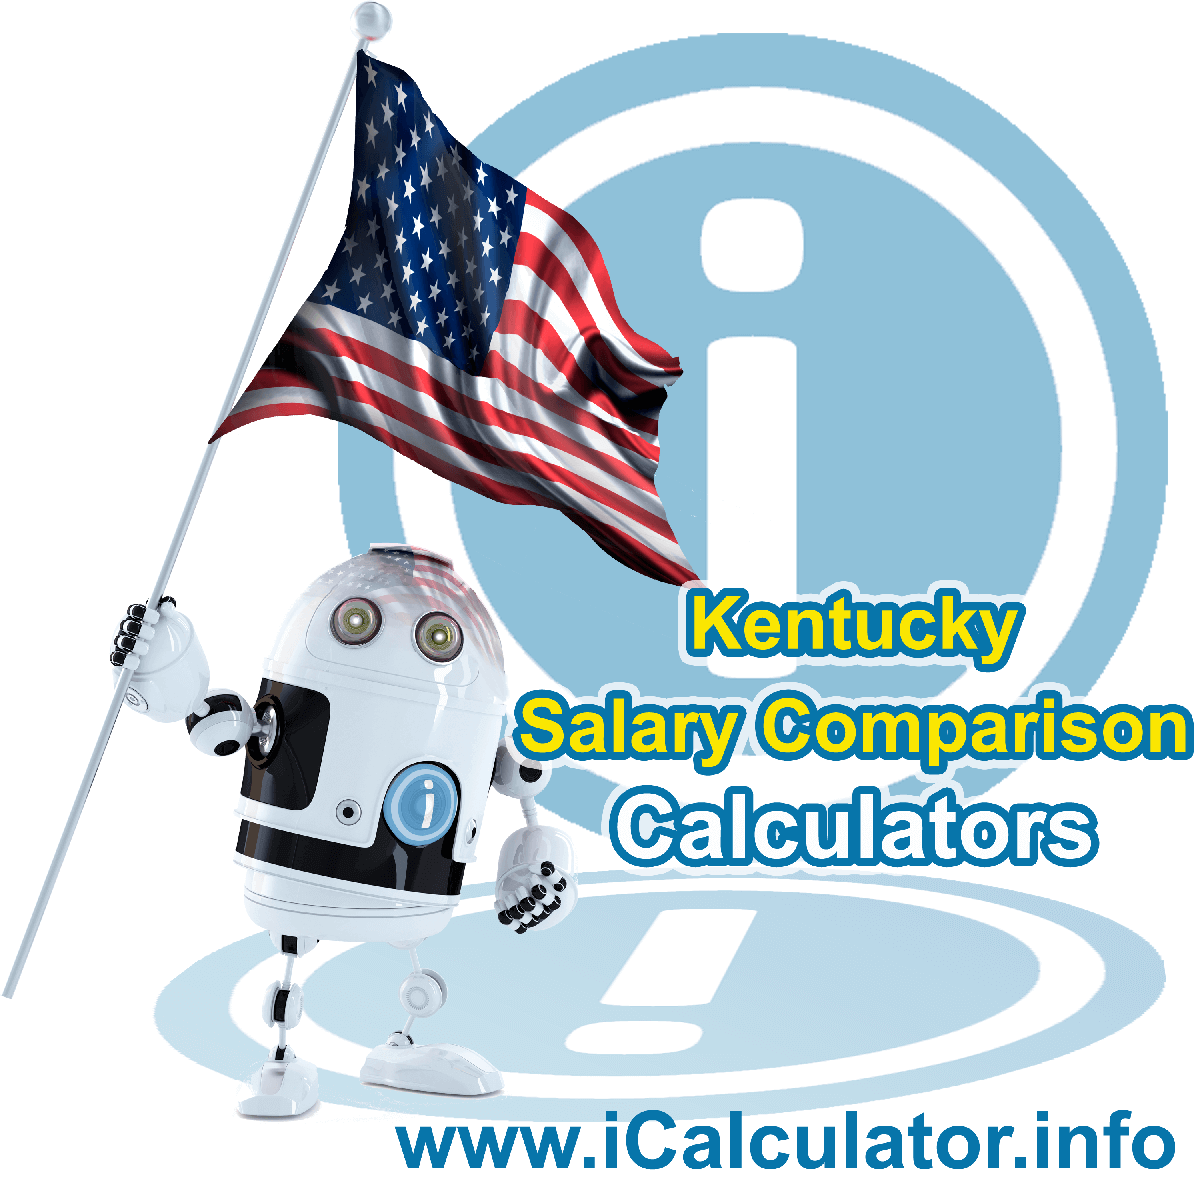 Kentucky Salary Comparison Calculator 2019 | iCalculator | The Kentucky Salary Comparison Calculator allows you to quickly calculate and compare upto 6 salaries in Kentucky or between other states for the 2019 tax year and historical tax years. Its an excellent tool for jobseekers, pay raise comparison and comparison of salaries between different US States